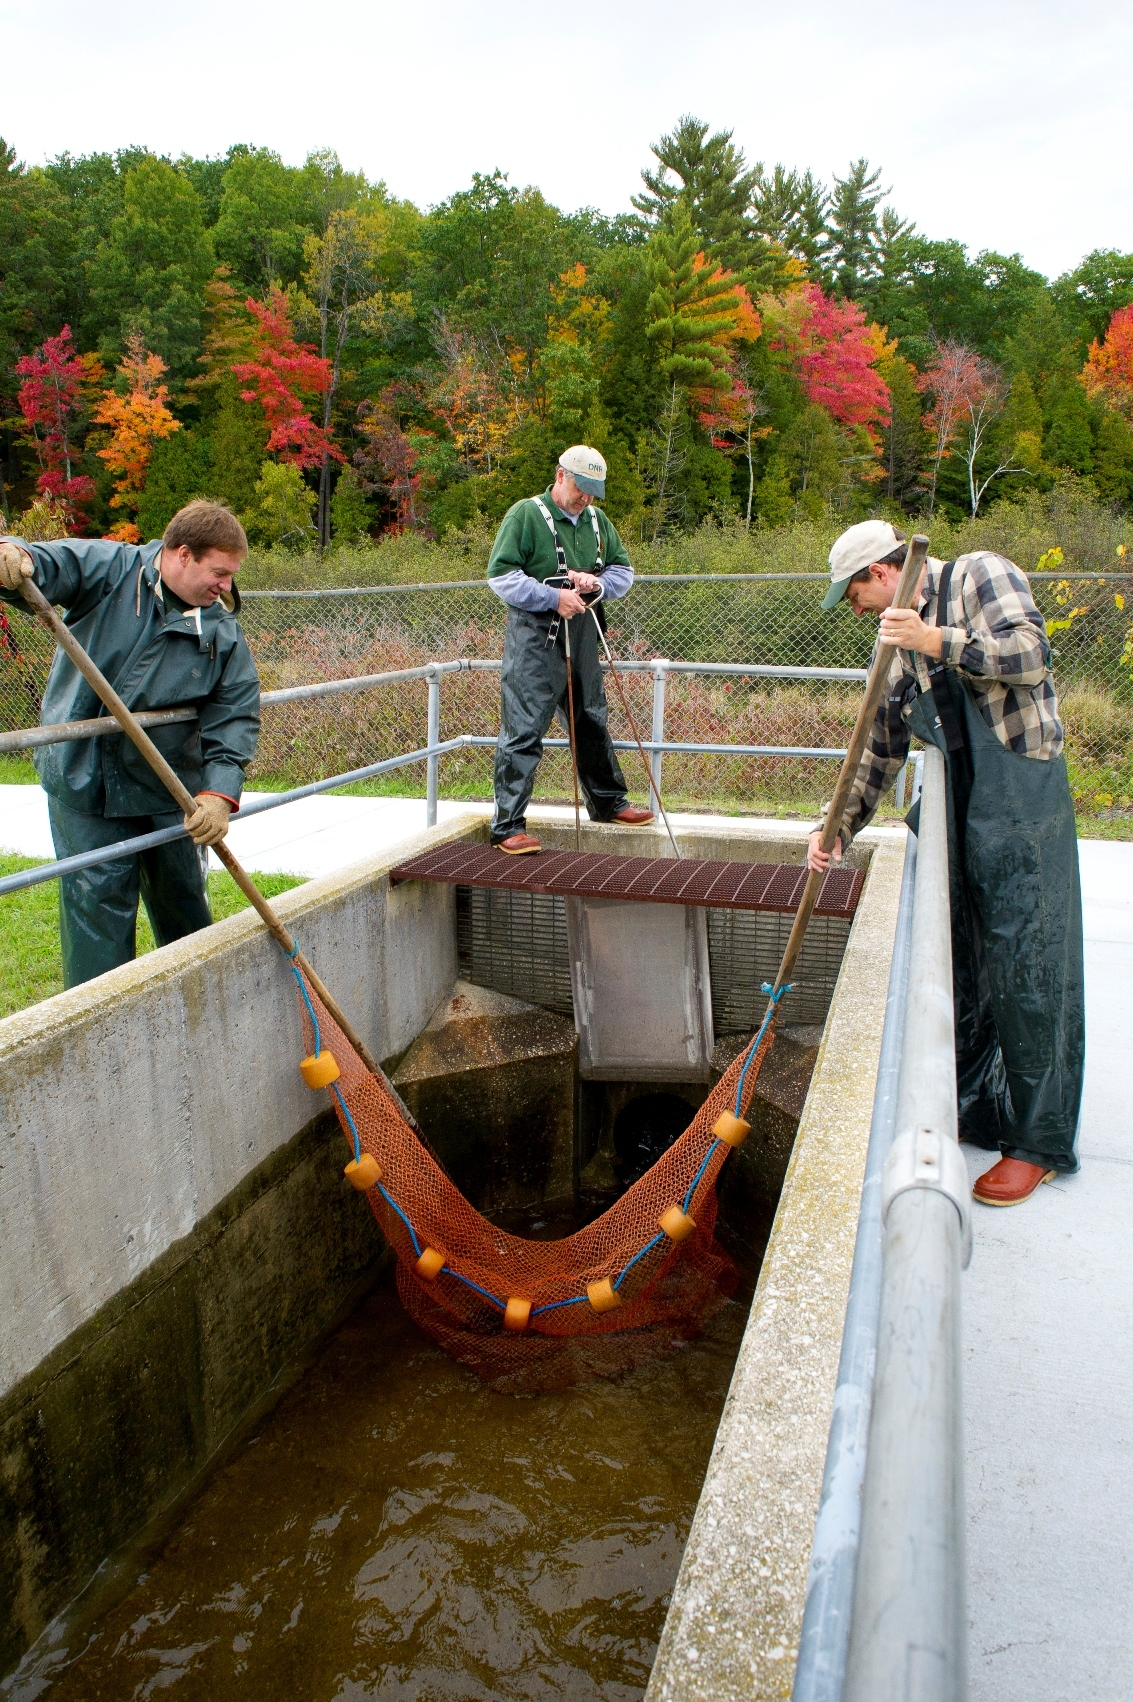 Michigan Department of Natural Resources workers net salmon at the Little Manistee River weir in Manistee County.